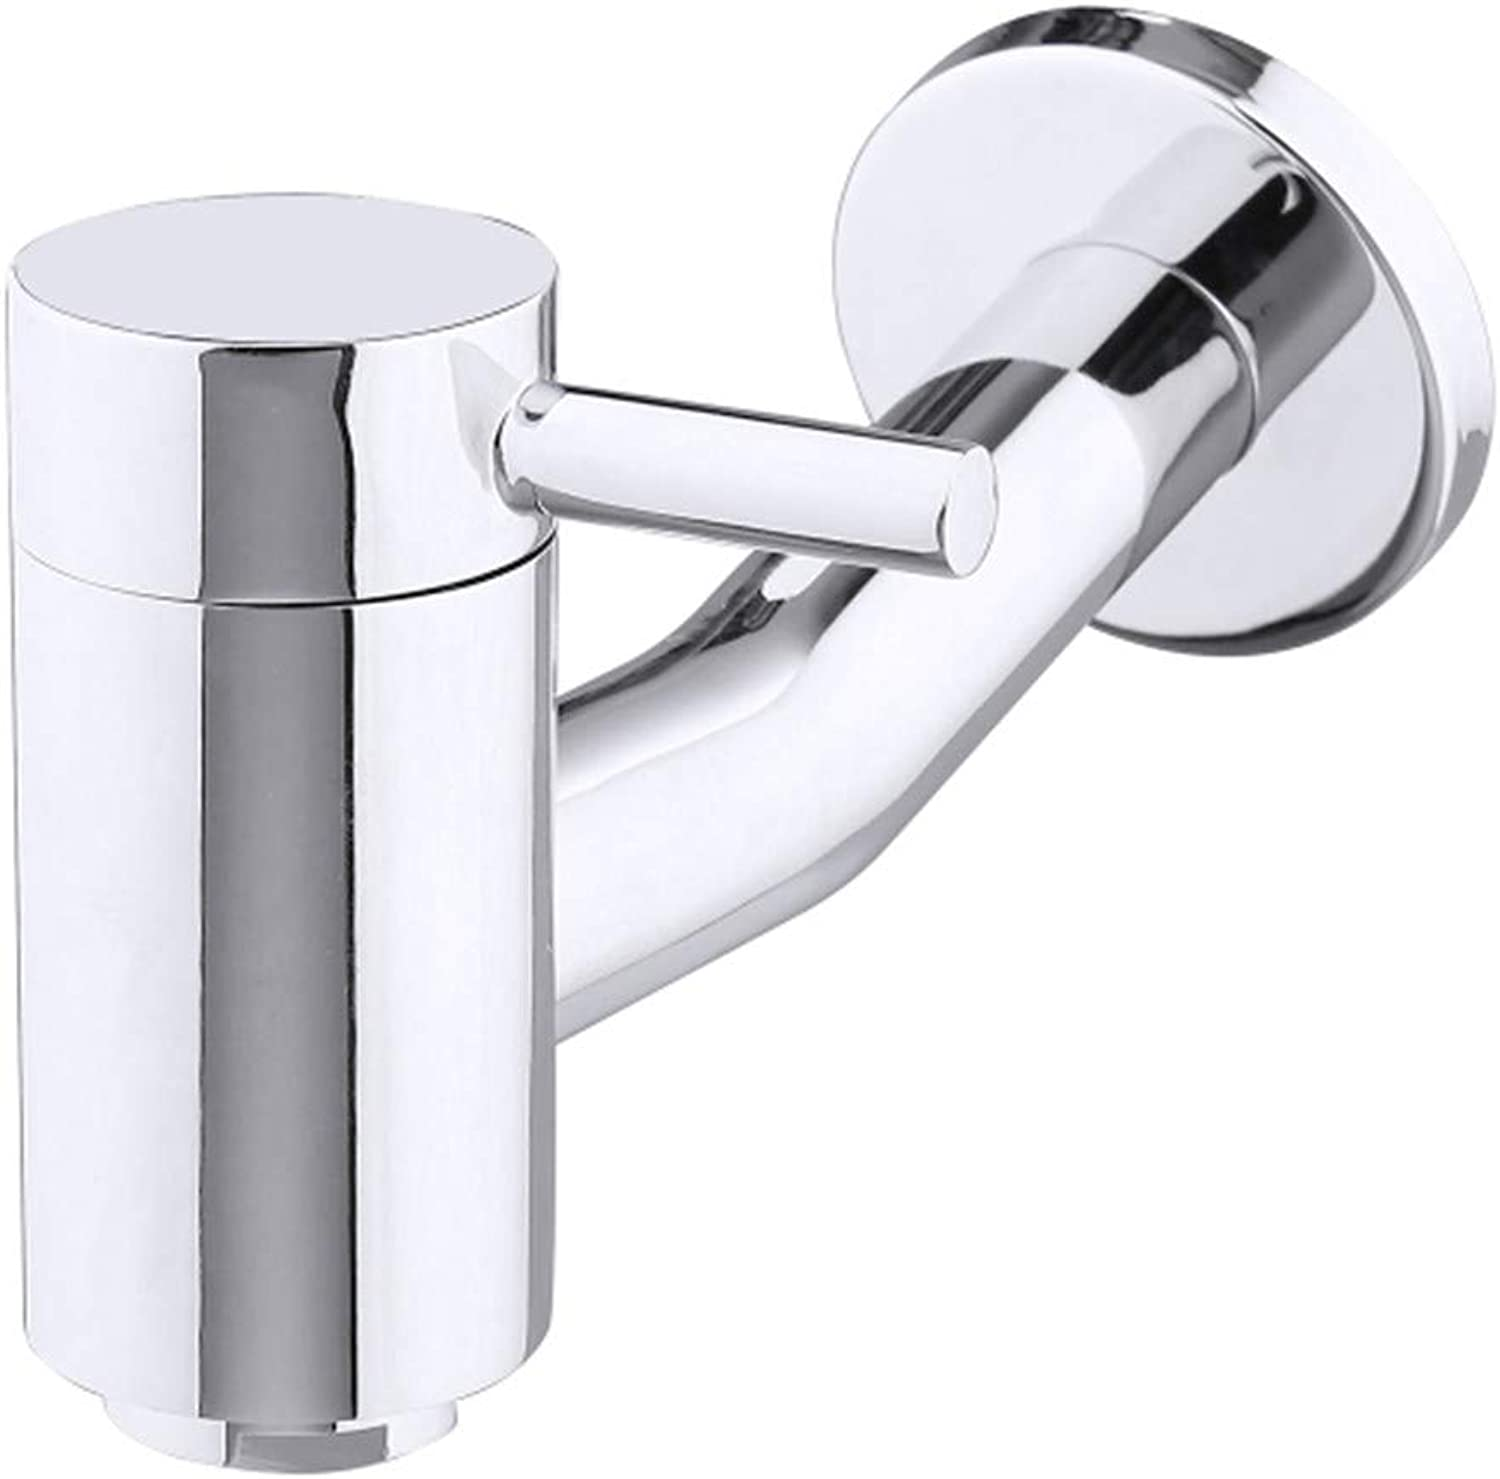 Faucet Modern Luxury Bathroom Chrome Polished Wall Mounted Single Cold Faucet 90Degree redation Bathtub Single Handle Basin Faucet Spout Water Filter